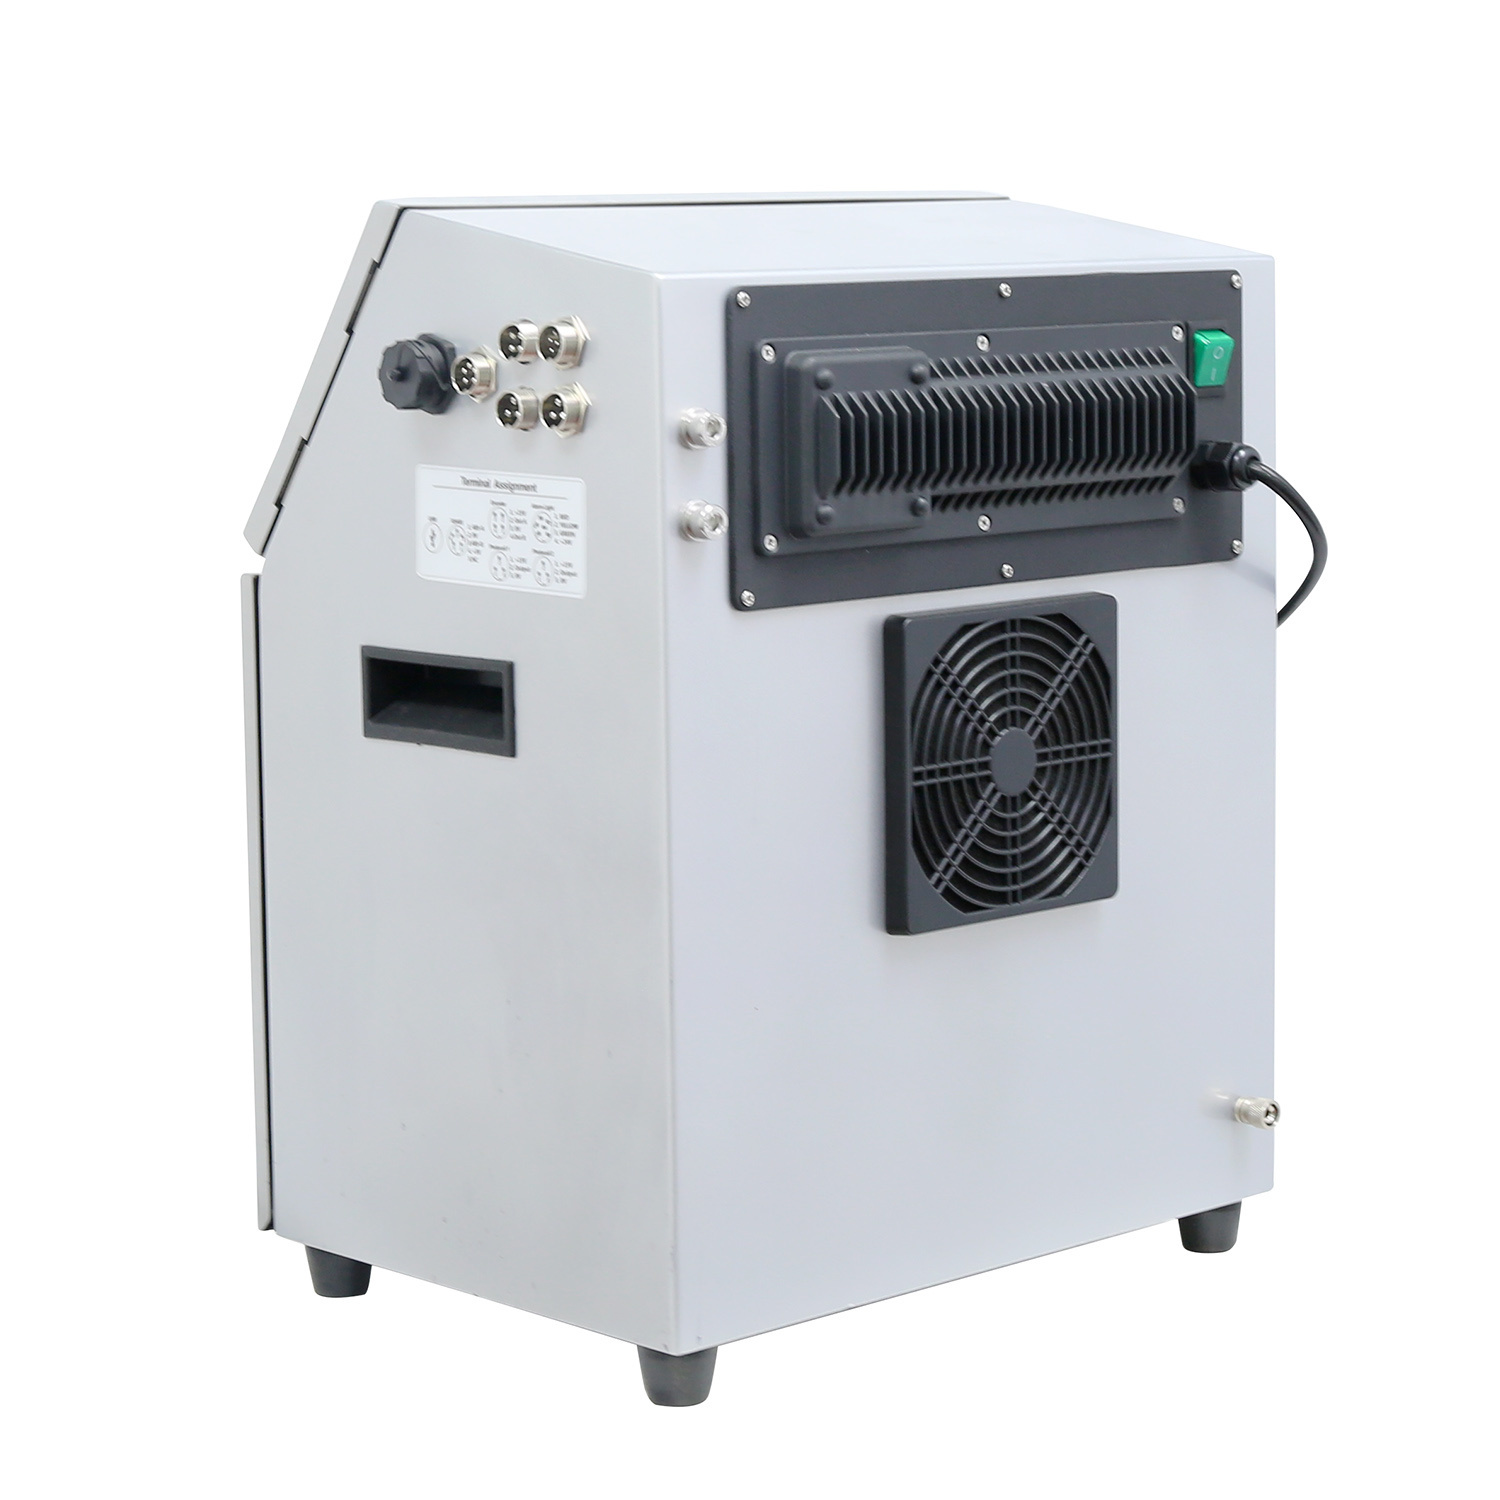 Lead Tech Lt800 Printer Date Printing Machine